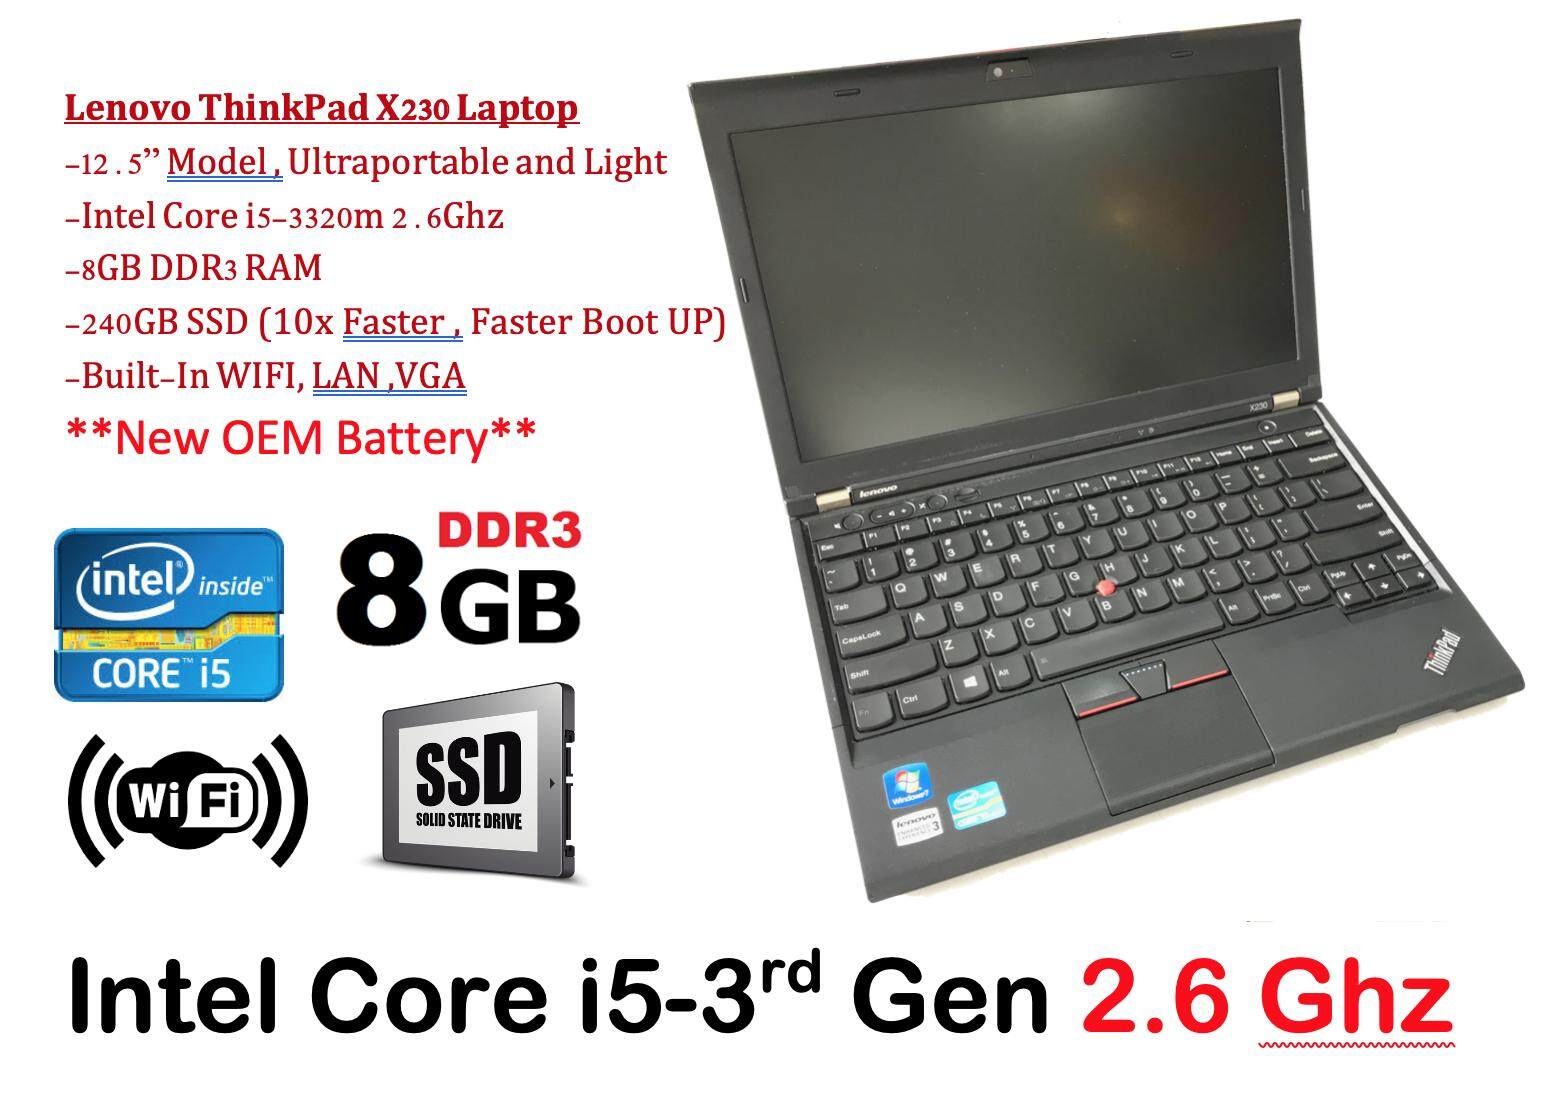 Refurbished Lenovo Thinkpad X230 with New Battery (Core i5 3rd Gen 2.6Ghz / 8GB RAM / 240GB SSD / Win 7 COA / Win 10 Pro / Bag (3 Mth Warranty for Laptop and 1 Mth Warranty for Adaptor and Battery) Used Laptop Notebook Malaysia